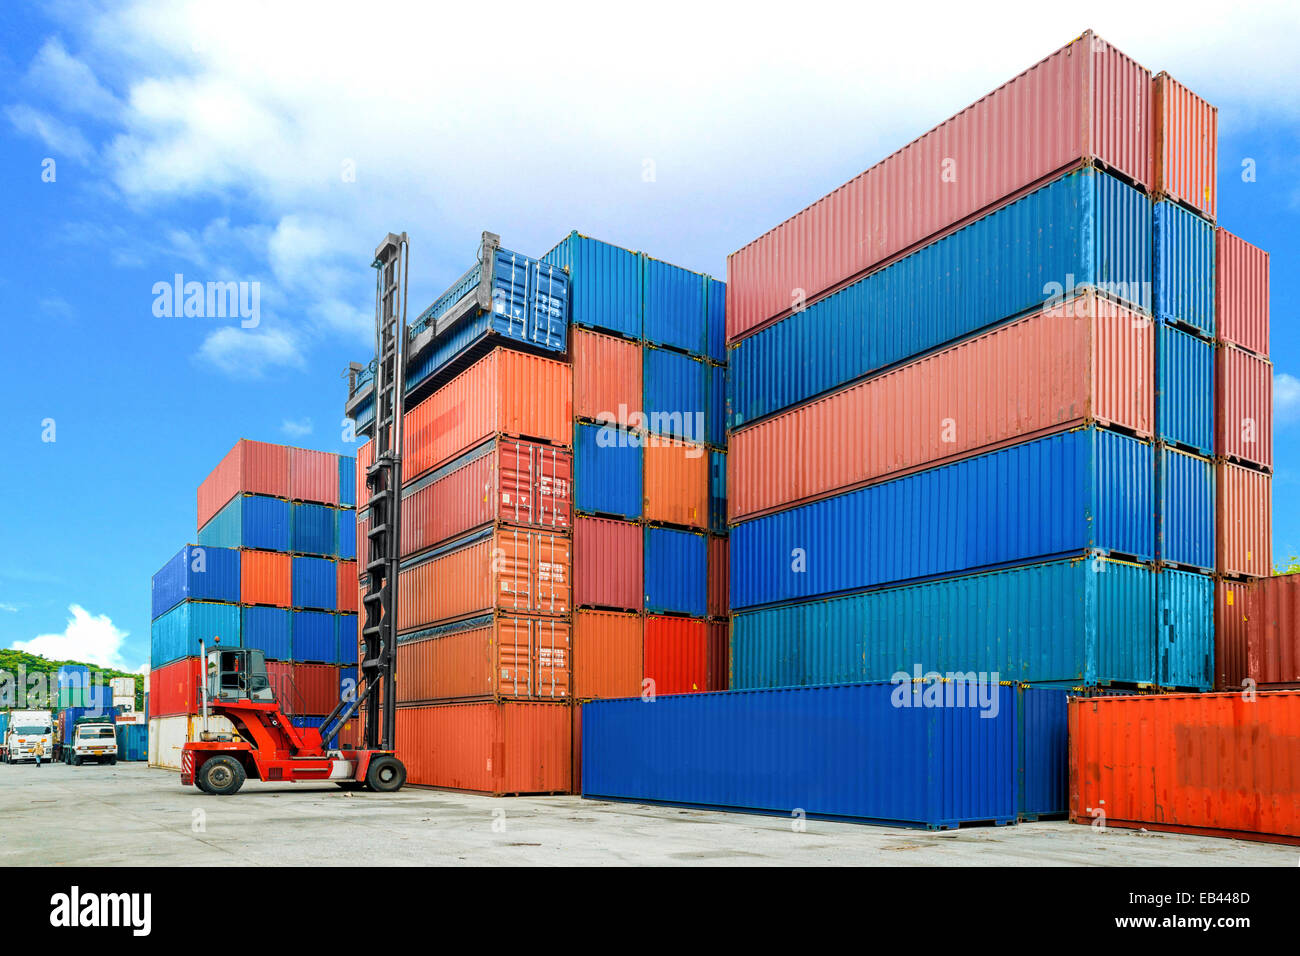 Crane lifter handling container box loading to depot - Stock Image